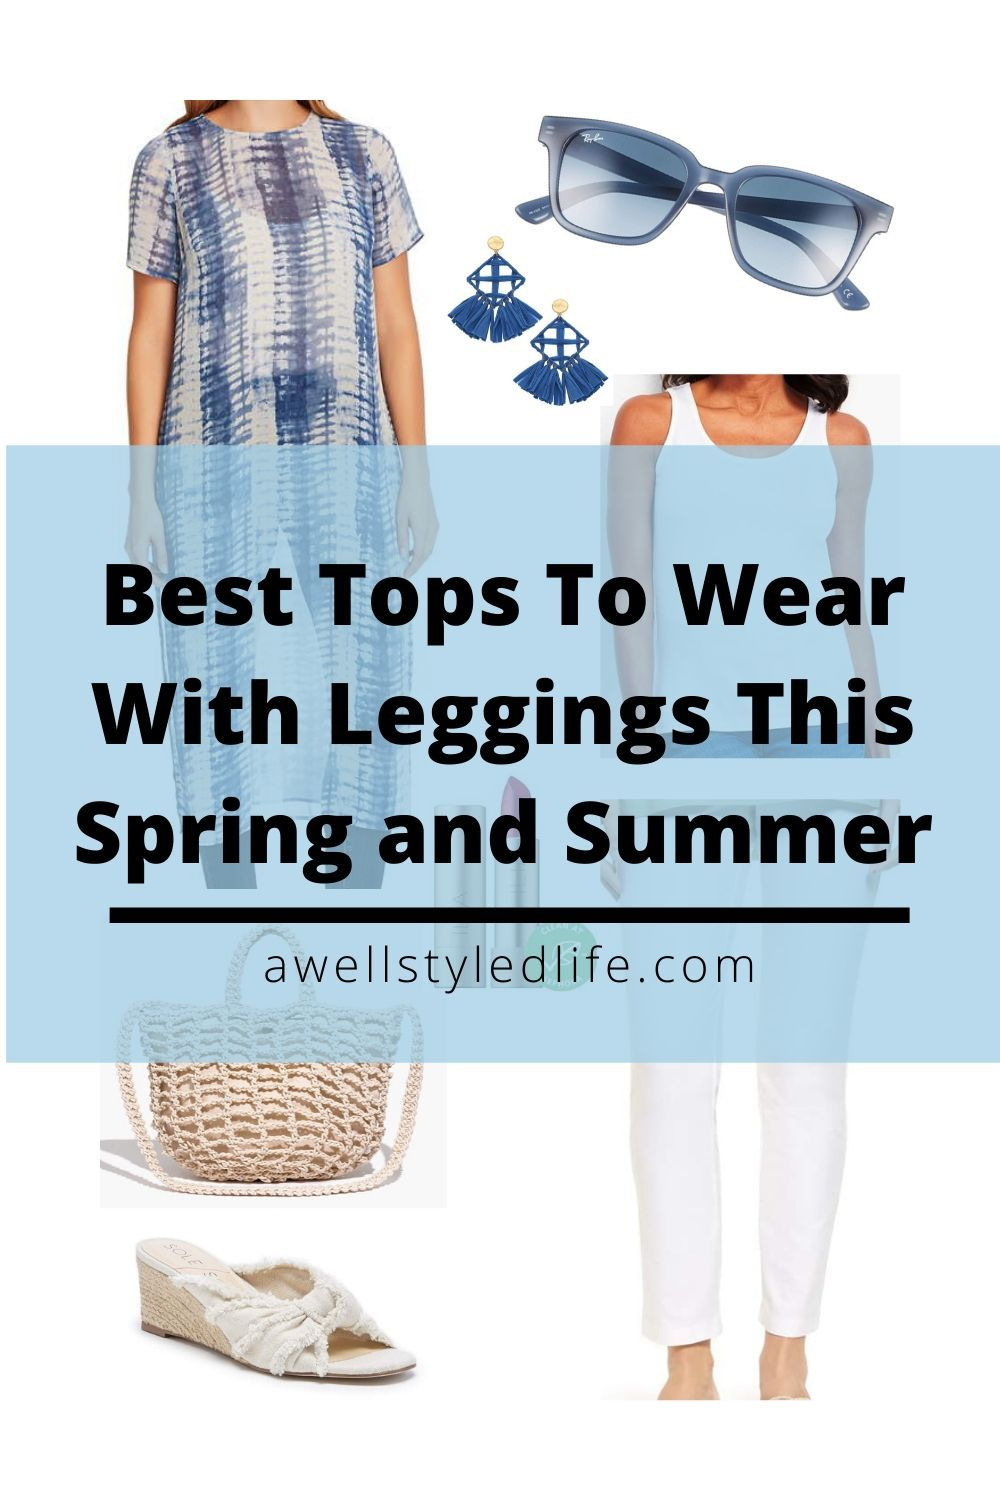 Tops To Wear With Leggings This Spring and Summer in 8  How to